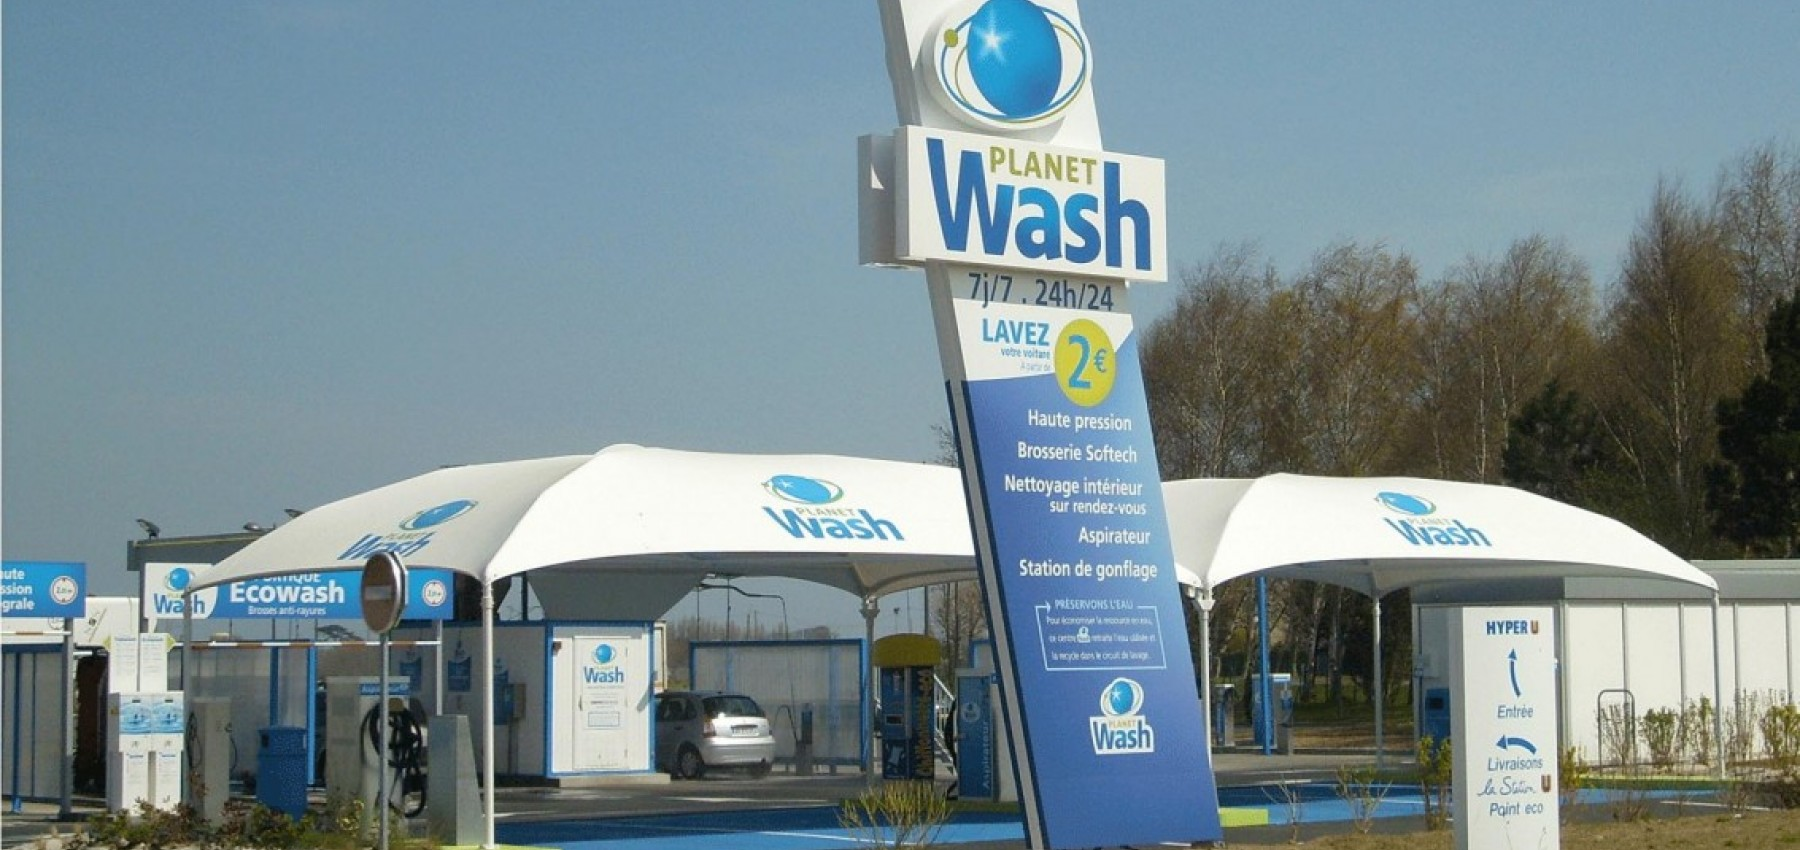 abri centre lavage planet wash